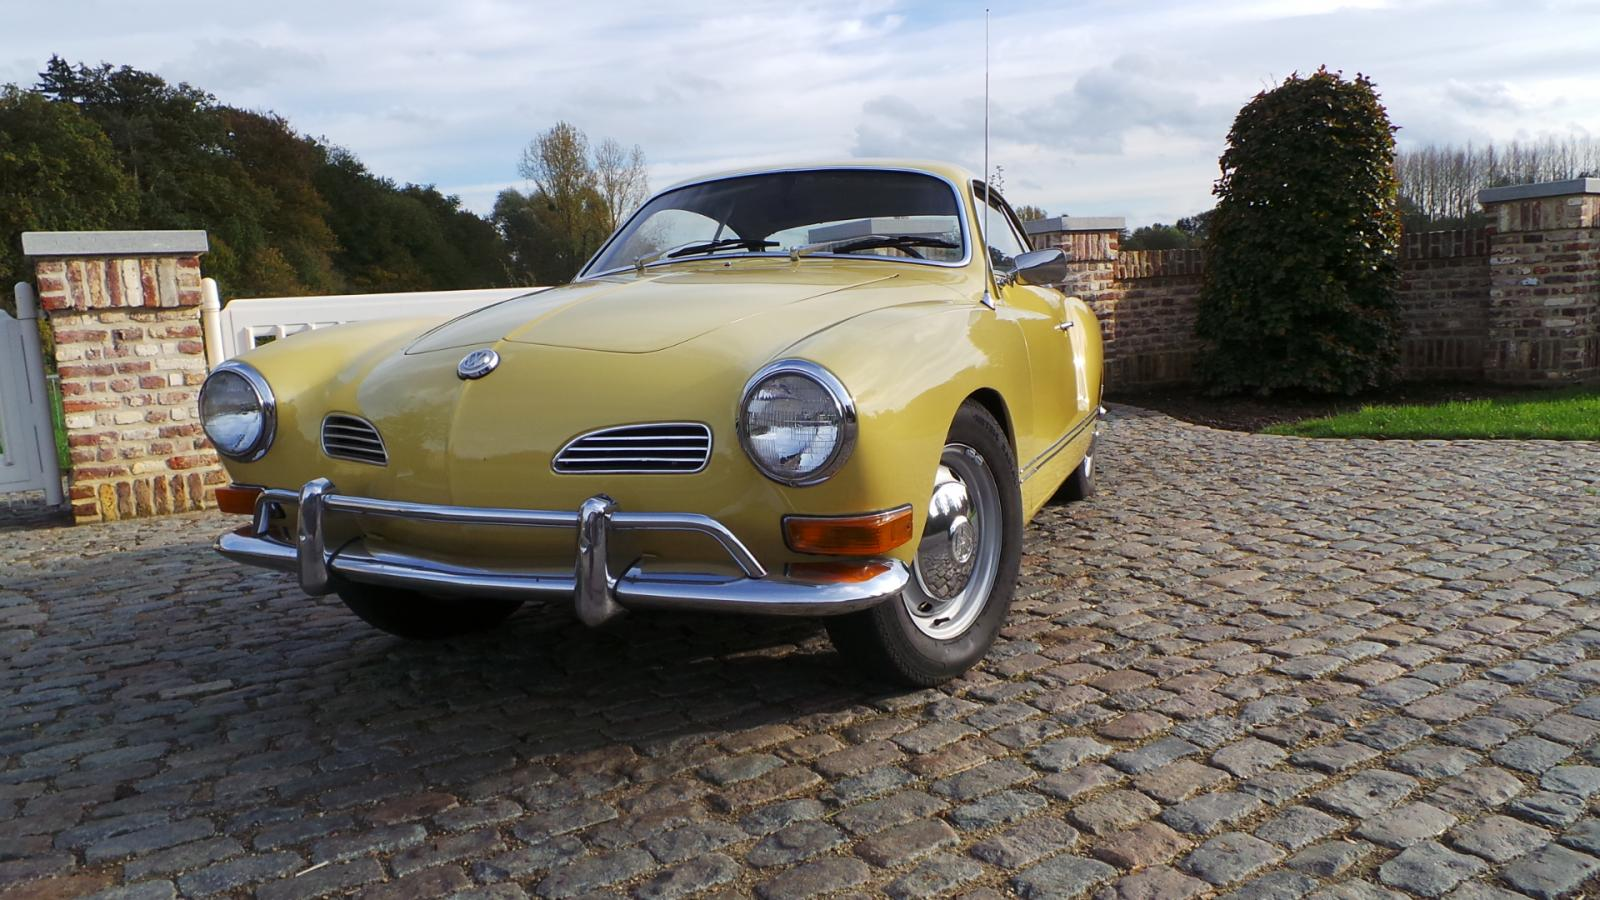 Thesamba gallery pampas yellow karmann ghia 1970 coup pampas yellow karmann ghia 1970 coup publicscrutiny Image collections